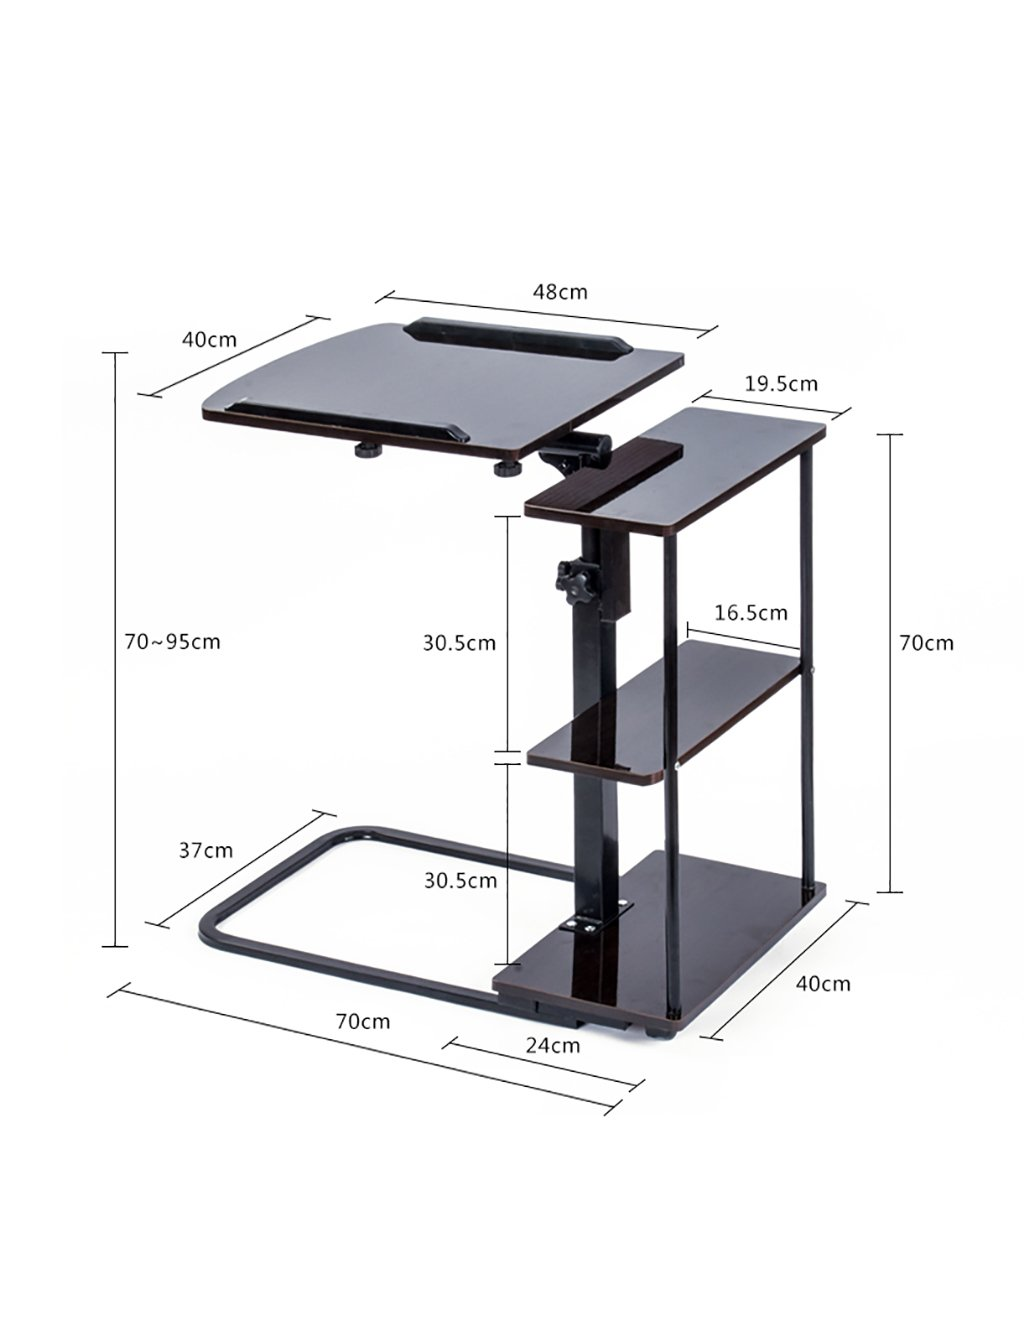 D LWH  704095cm HAIPENG Simple Foldable Laptop Desk Computer Desk with A Pulley Easy to Move (in 4 colors Optional) (color   D, Size   LWH  70  40  95cm)